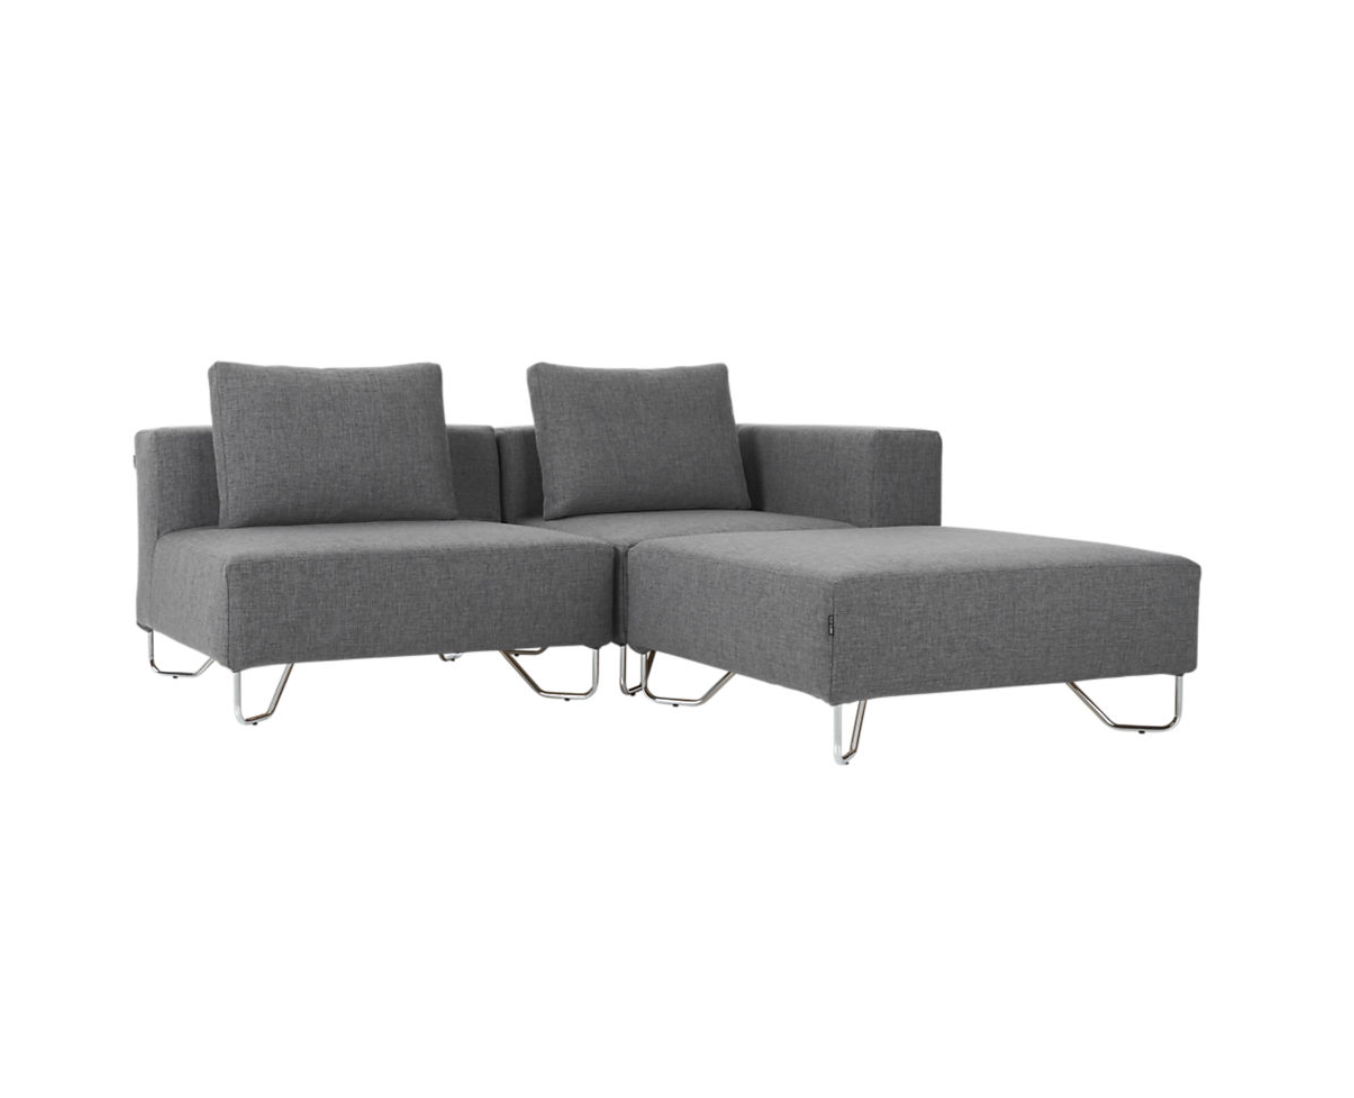 Terrific Cb2 Lotus Sectional Eight Pieces Five Pillows Original Andrewgaddart Wooden Chair Designs For Living Room Andrewgaddartcom